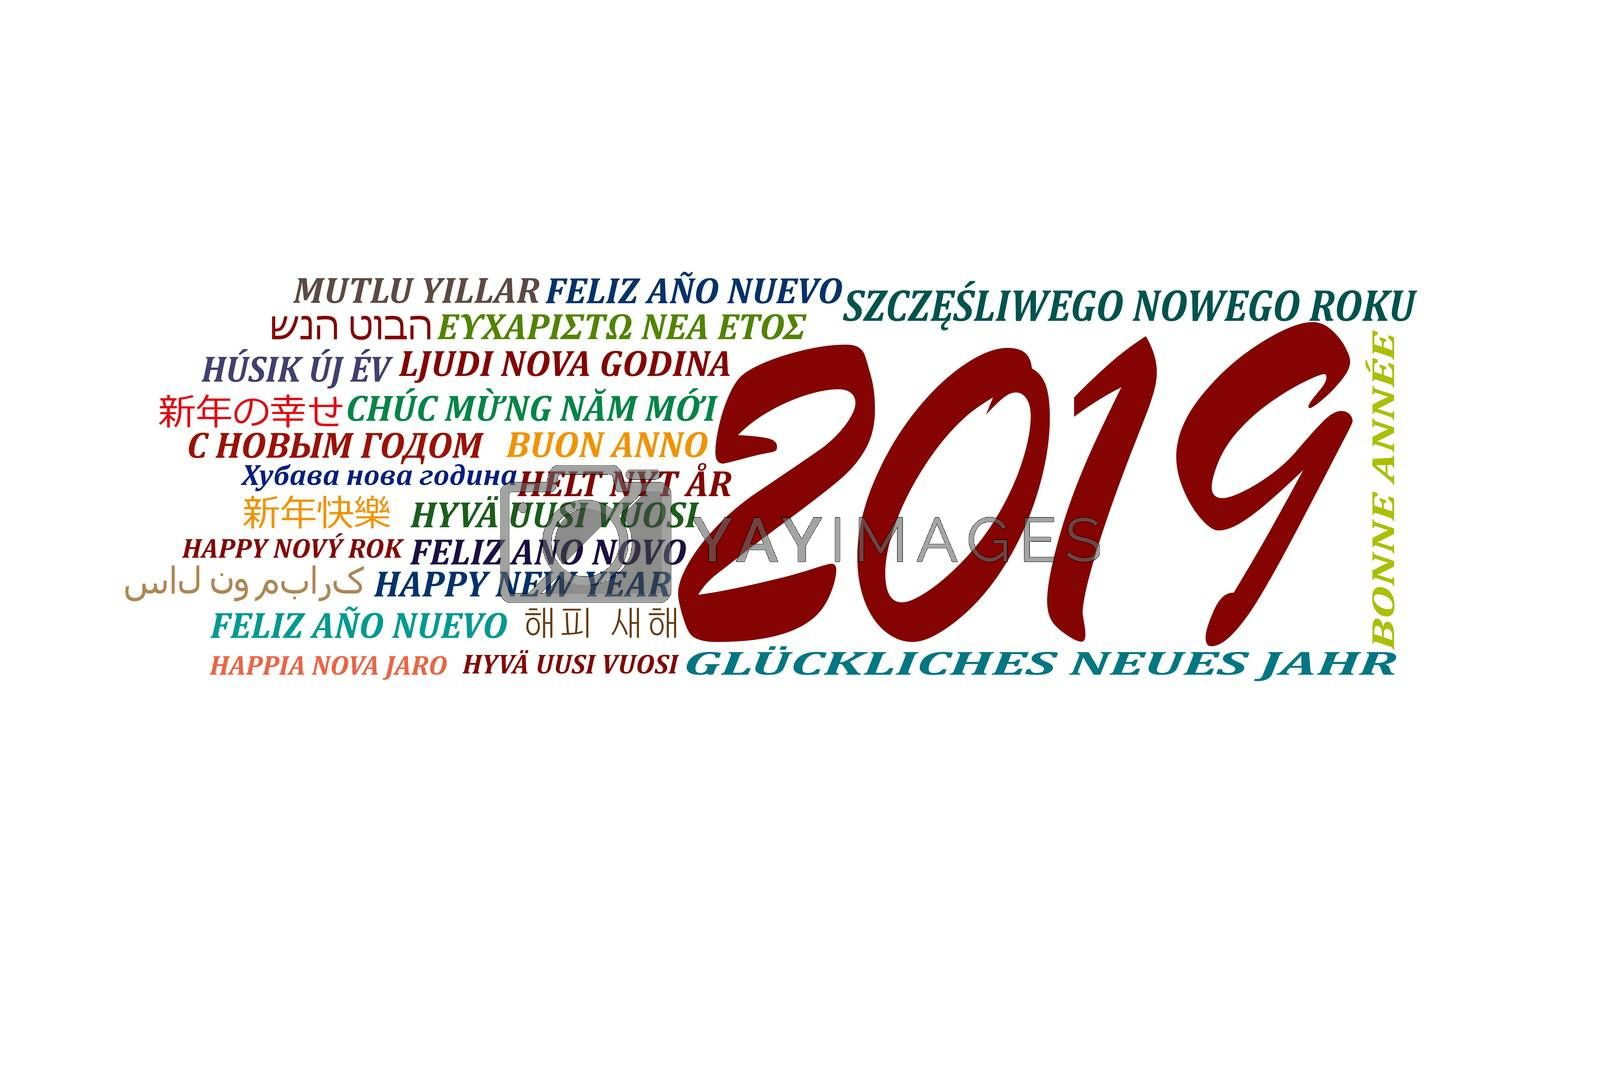 Happy new year 2019 in different languages of the world on a white background